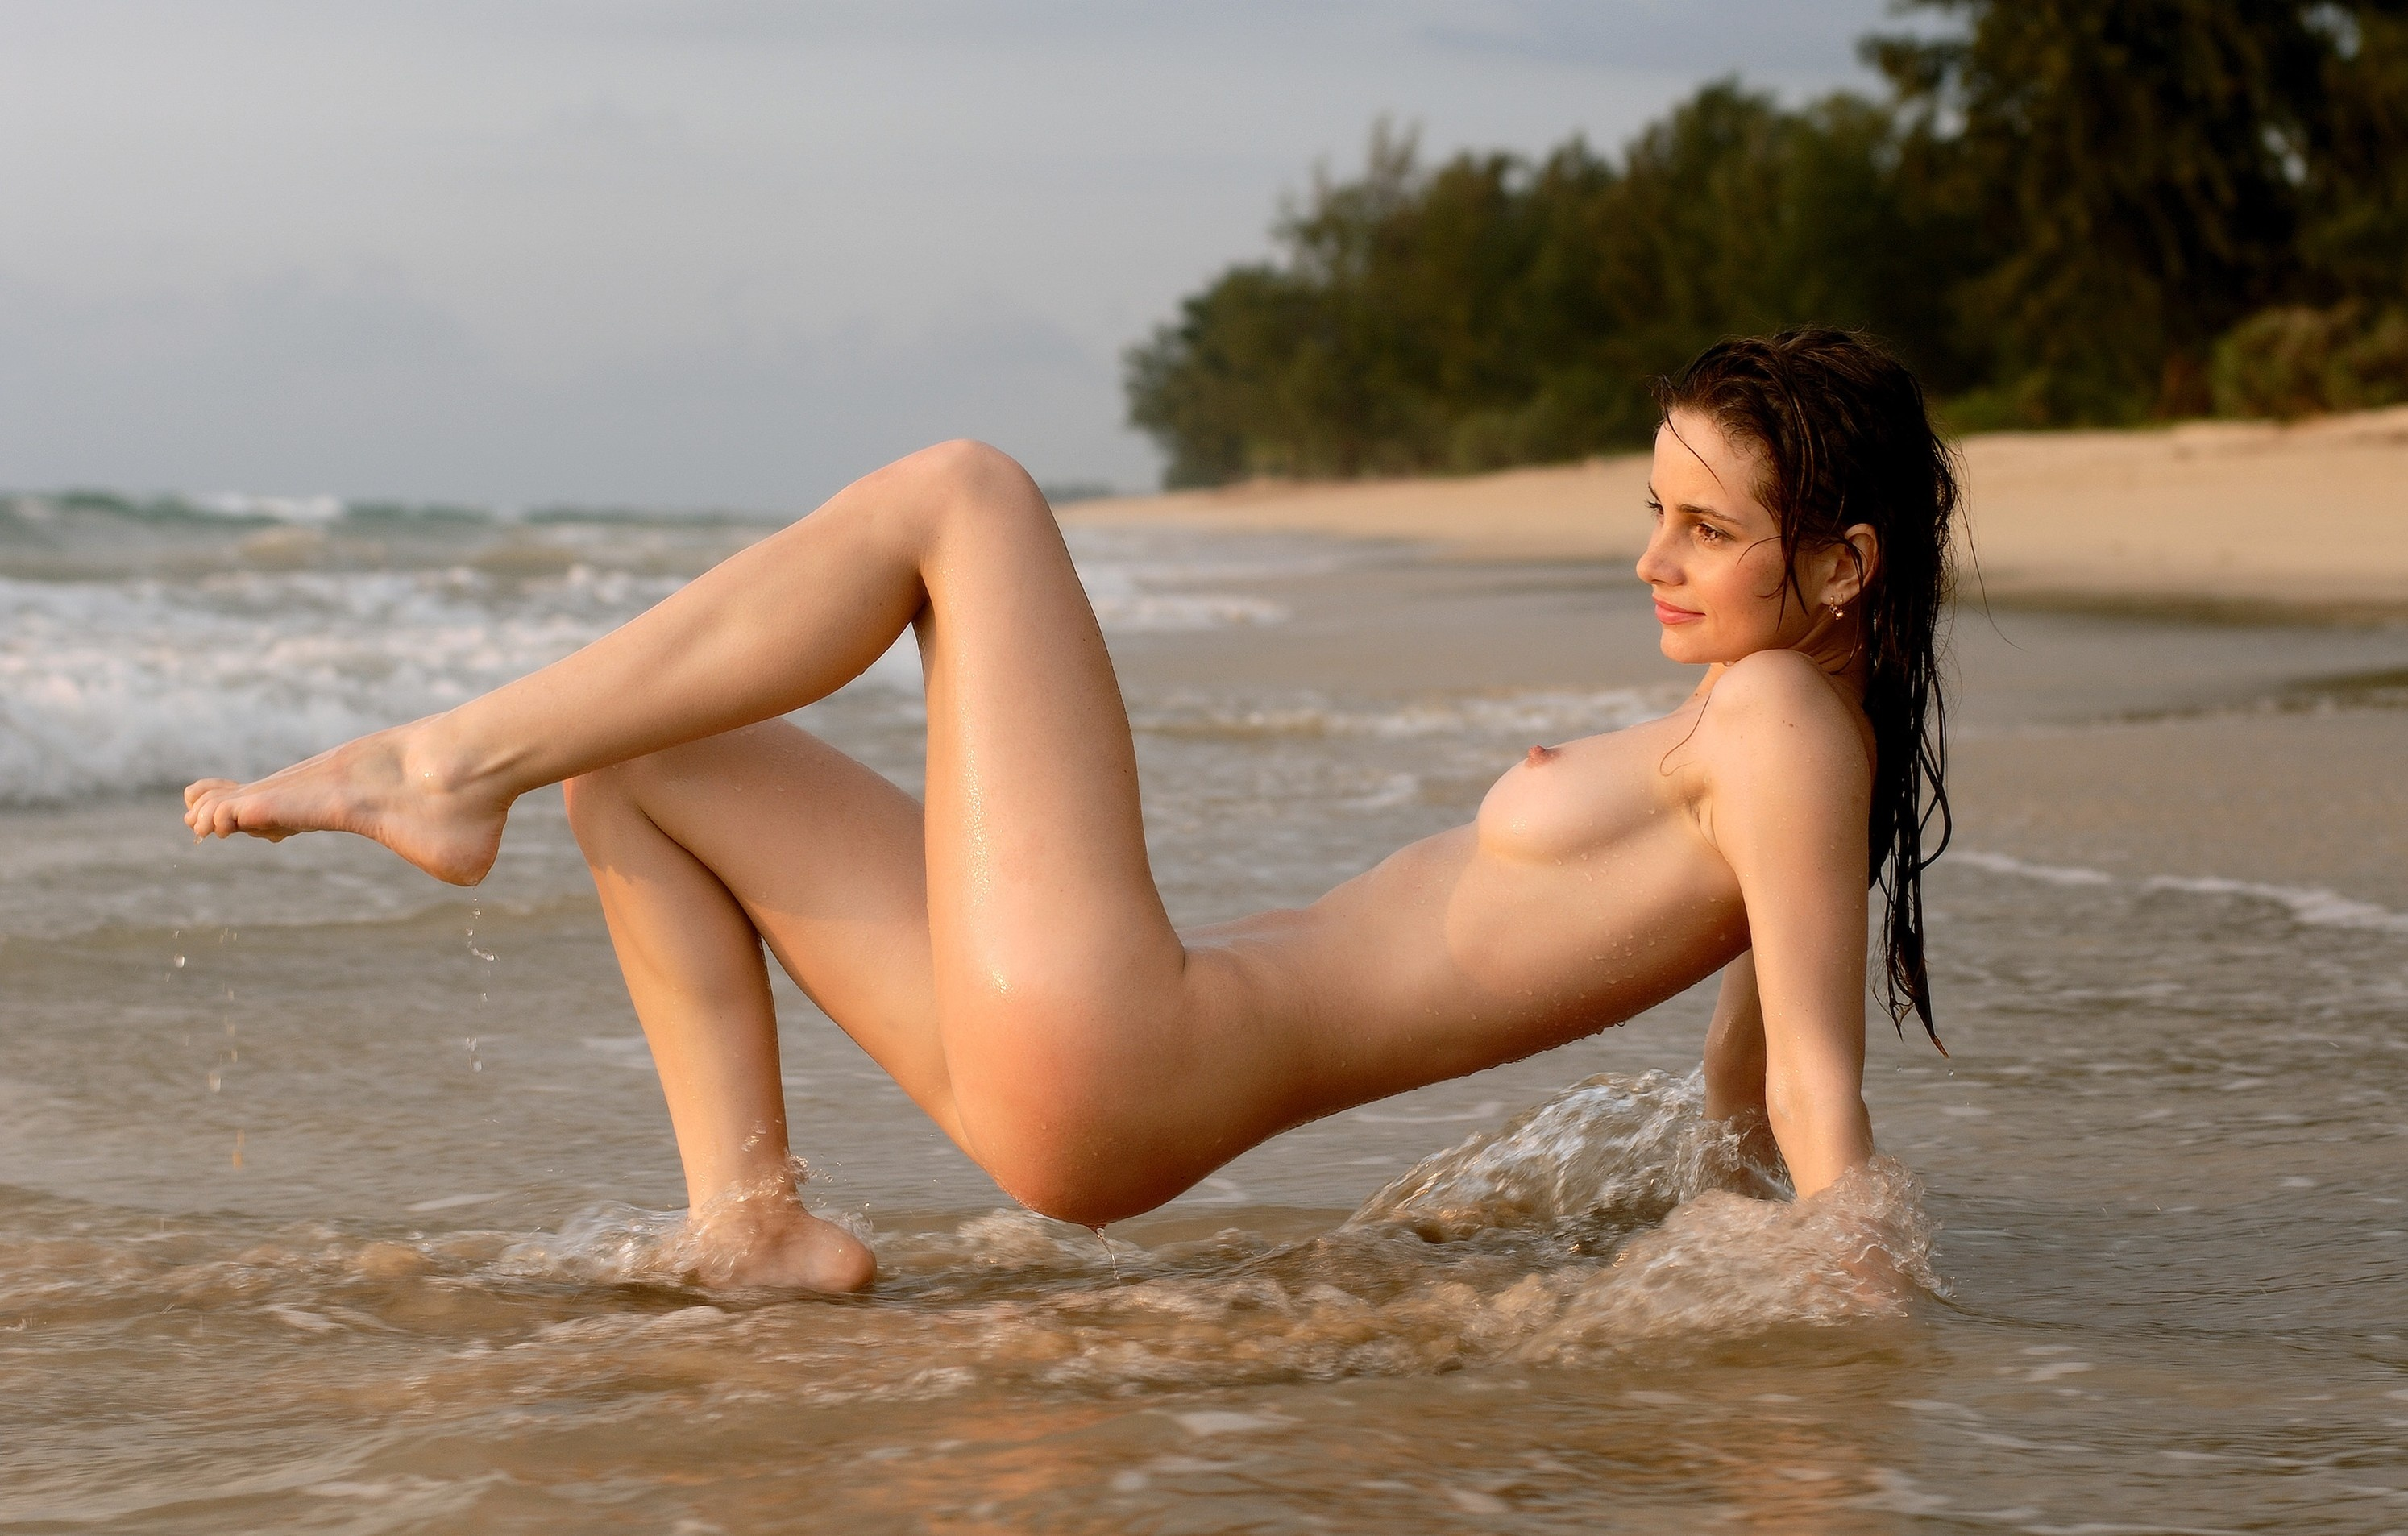 wet-water-beach-nude-young-girls-thong-pictures